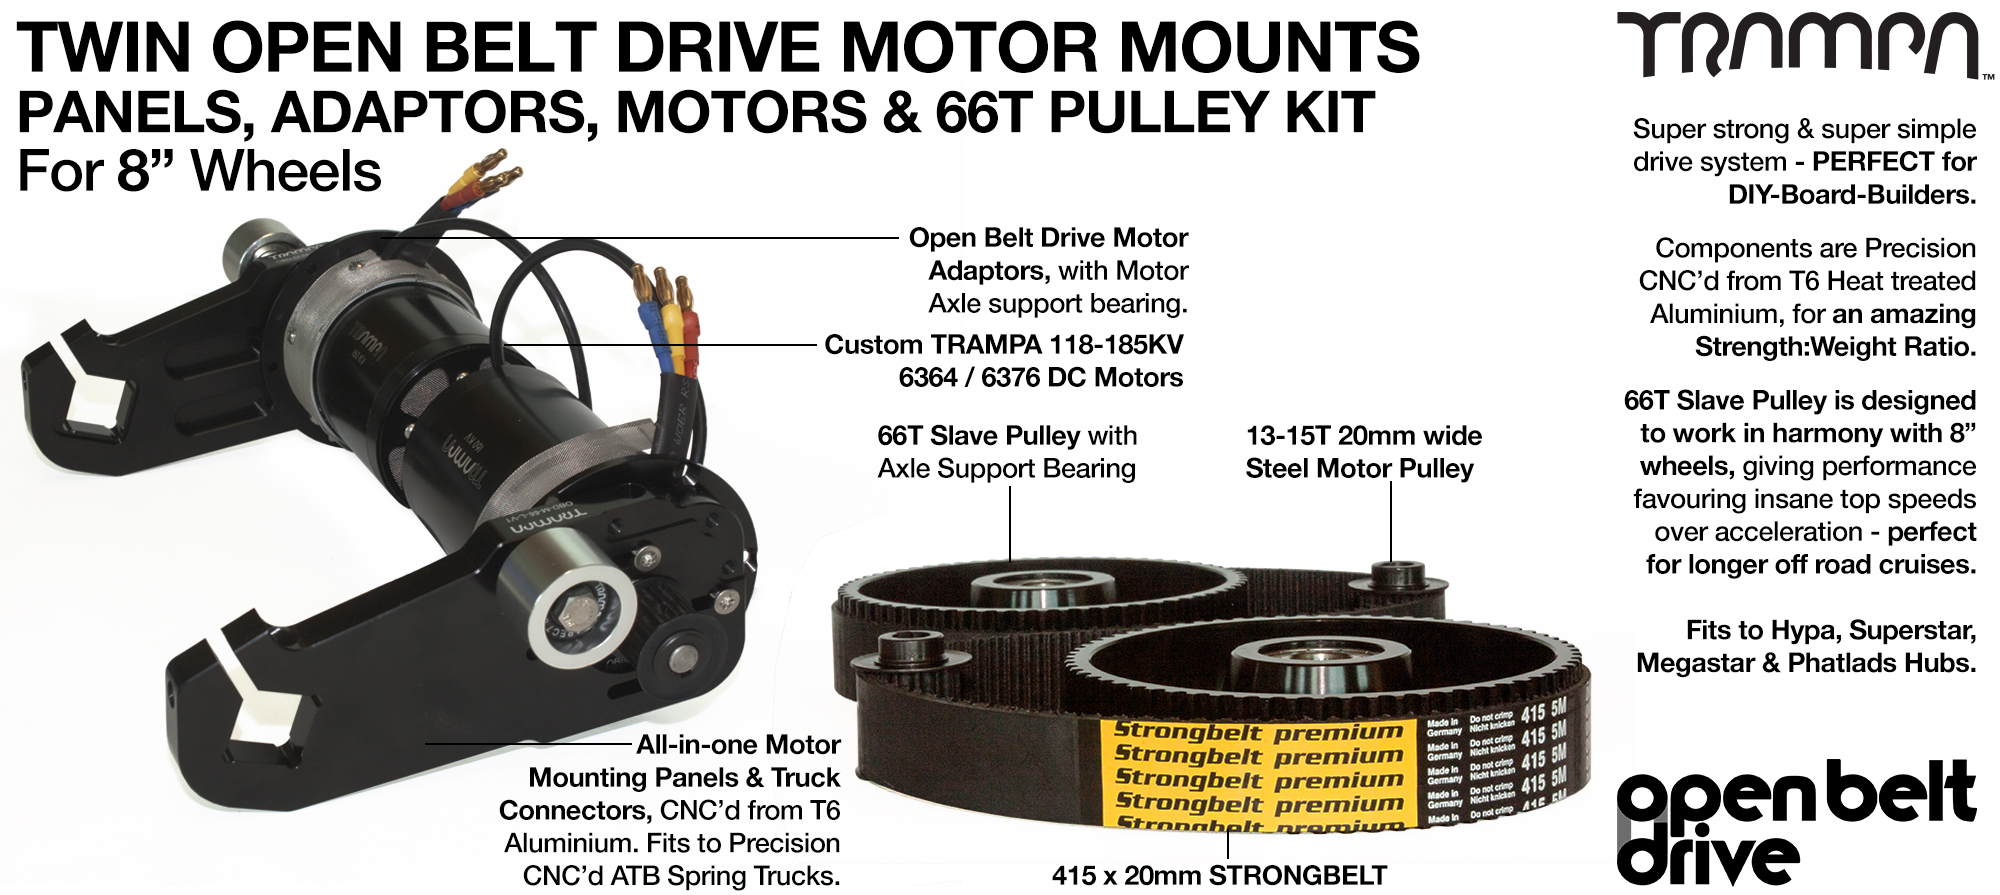 66T OBD Motor Mount & 66 tooth Pulley for 8 inch Wheel with custom Motor - TWIN